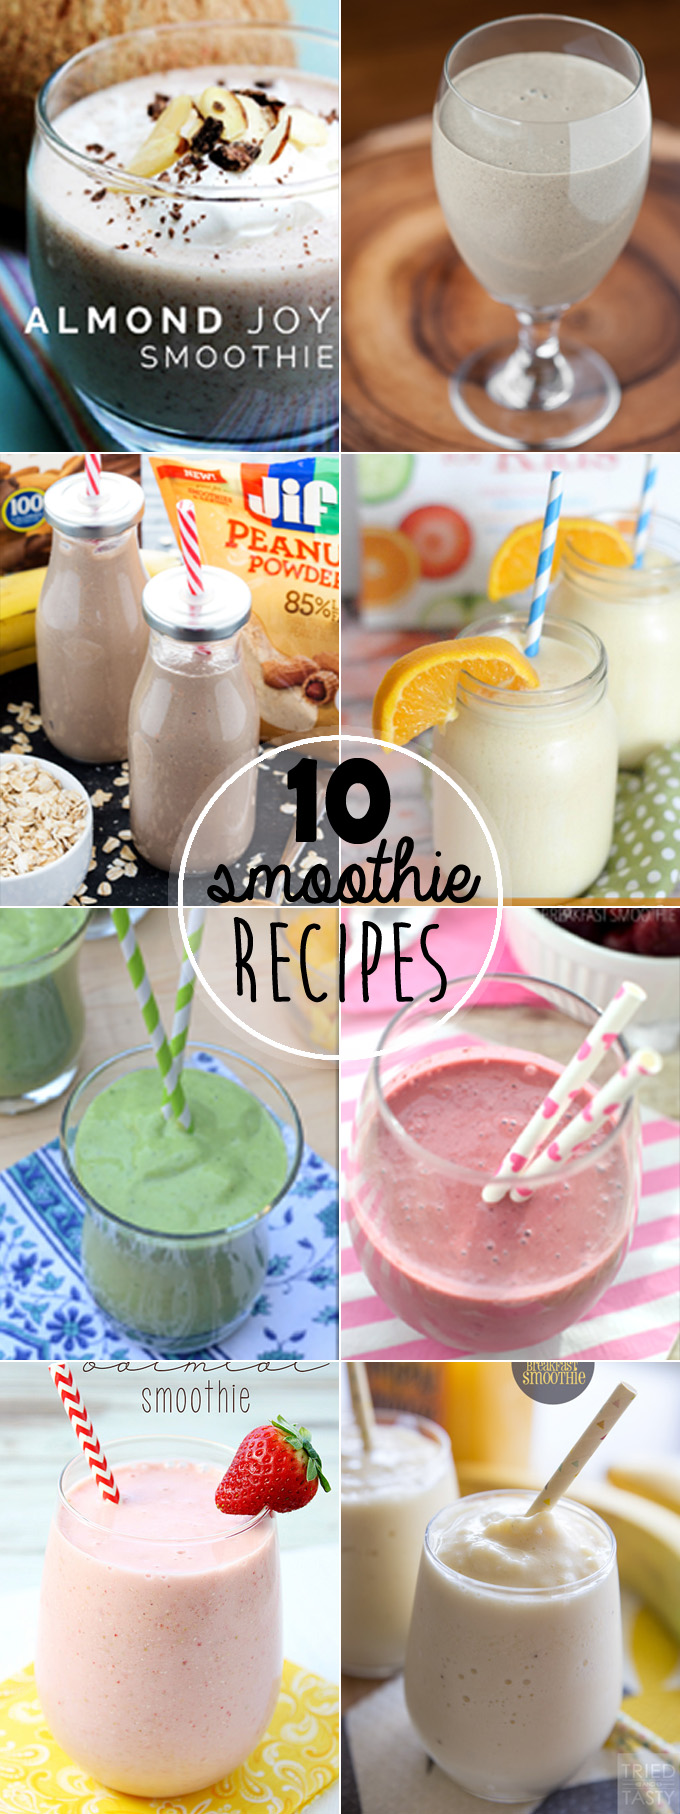 Top 10 Healthy Smoothies for Breakfast